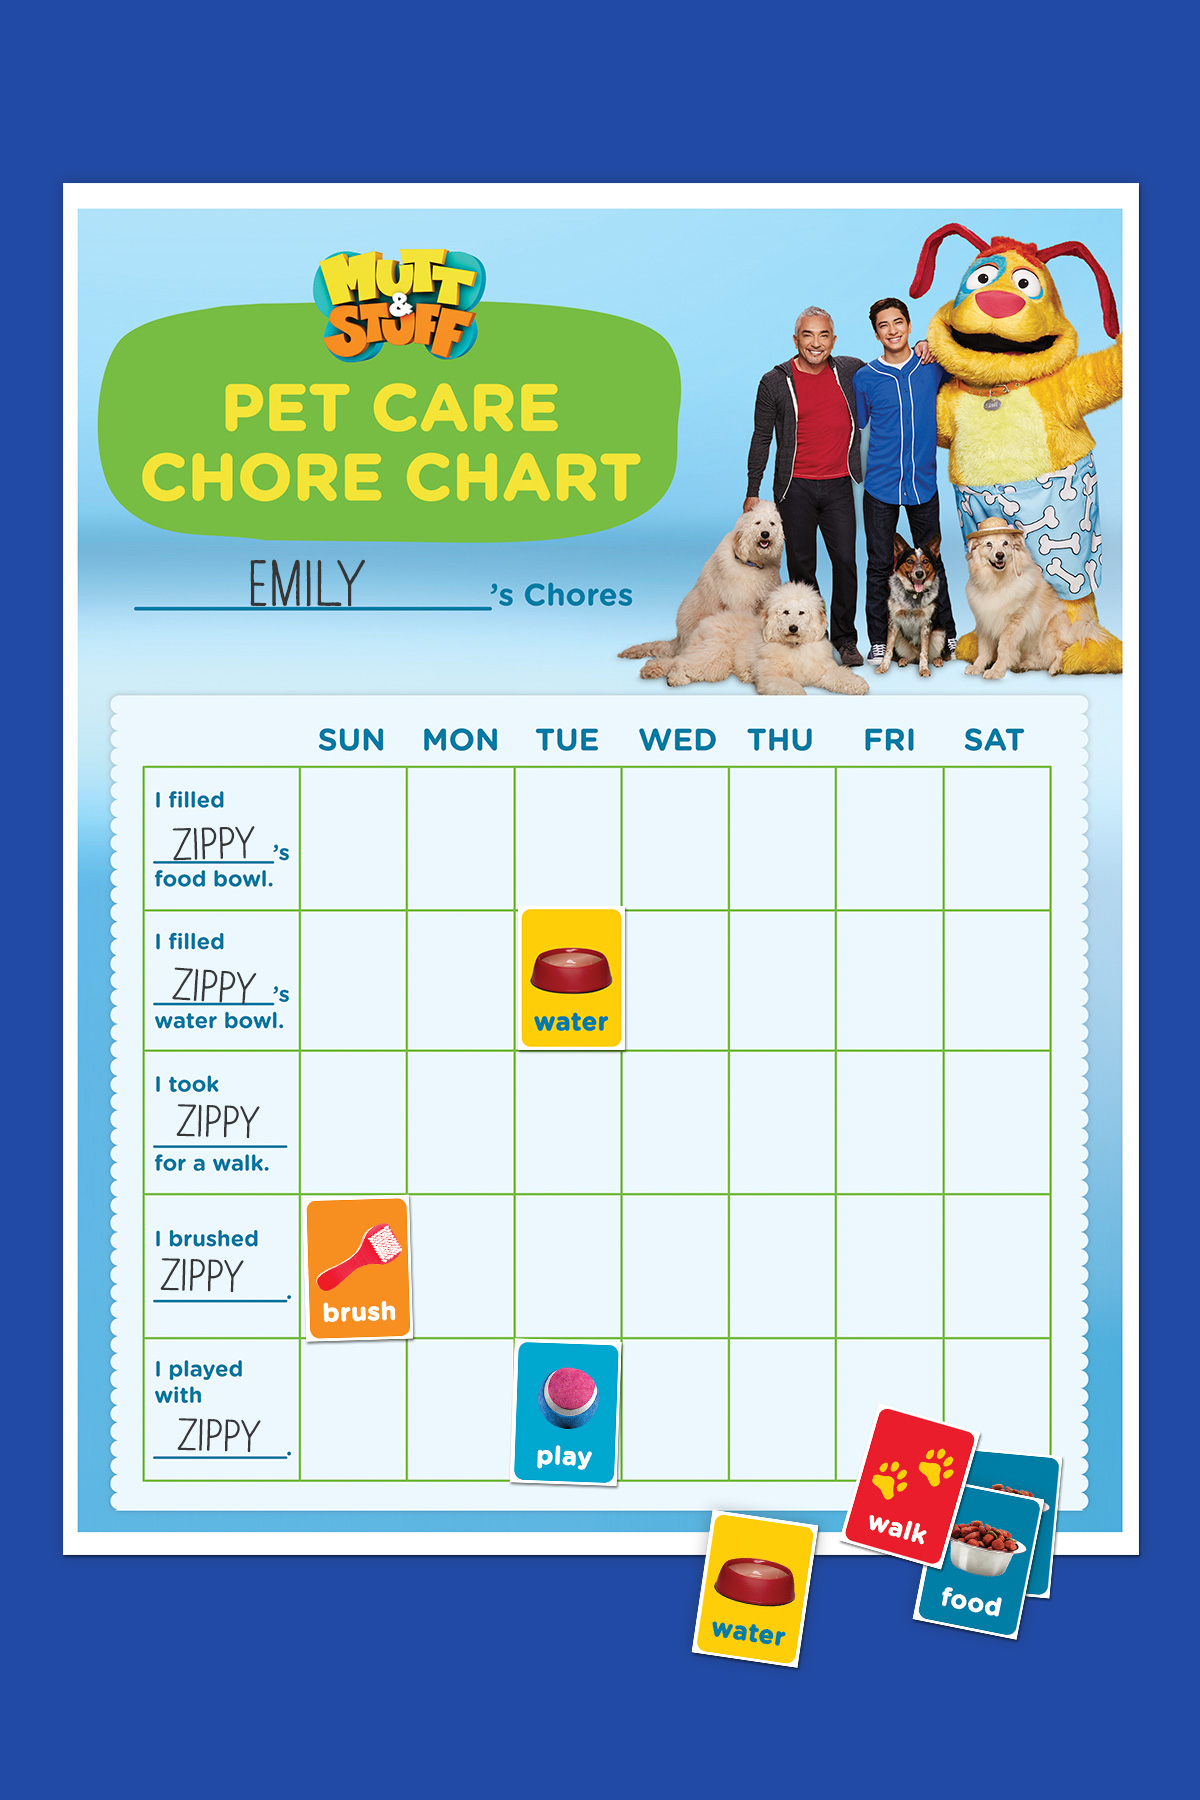 Mutt & Stuff First Pet Chore Chart